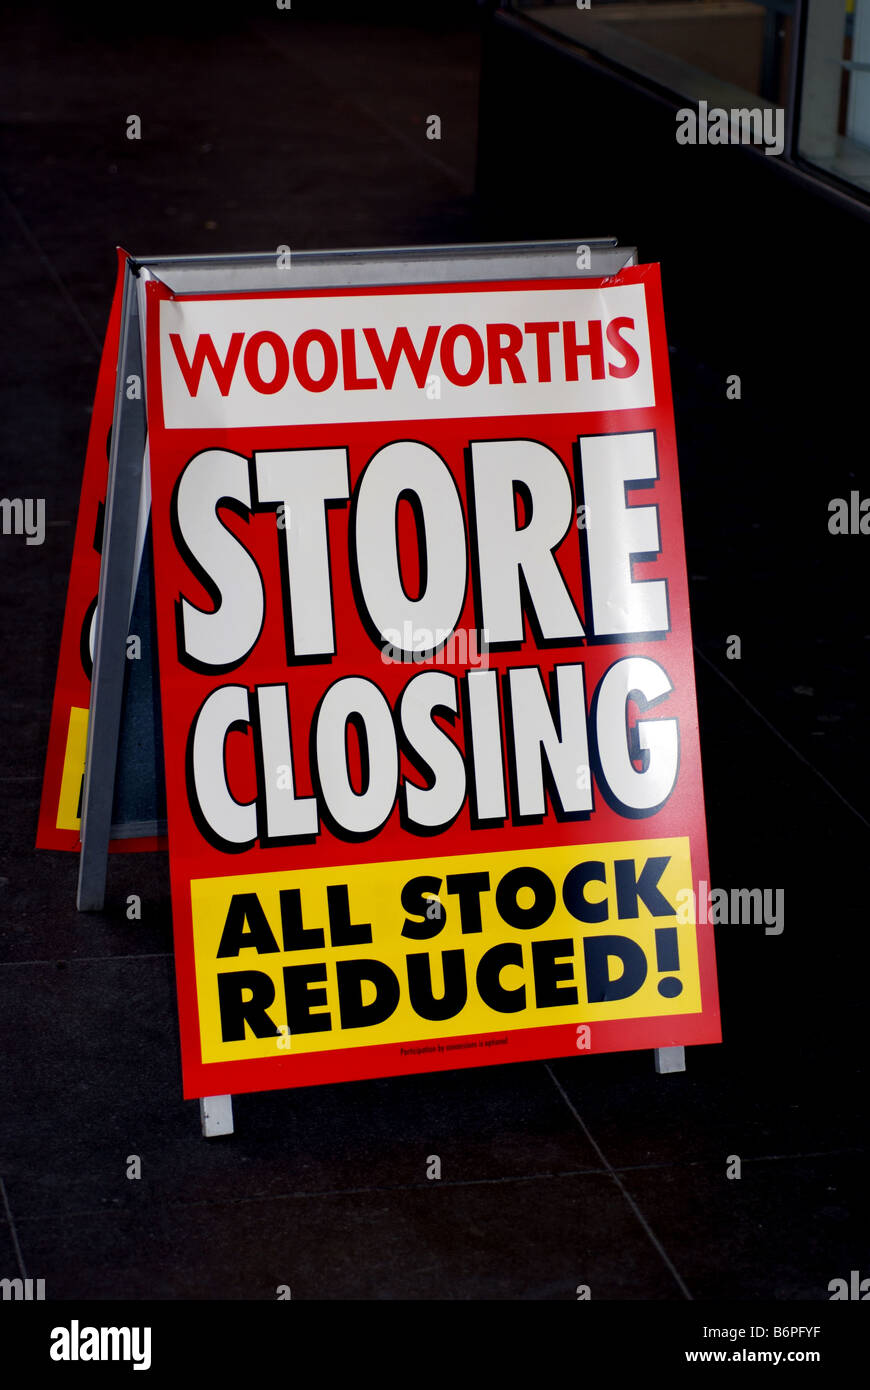 Woolworths store closing sign UK - Stock Image